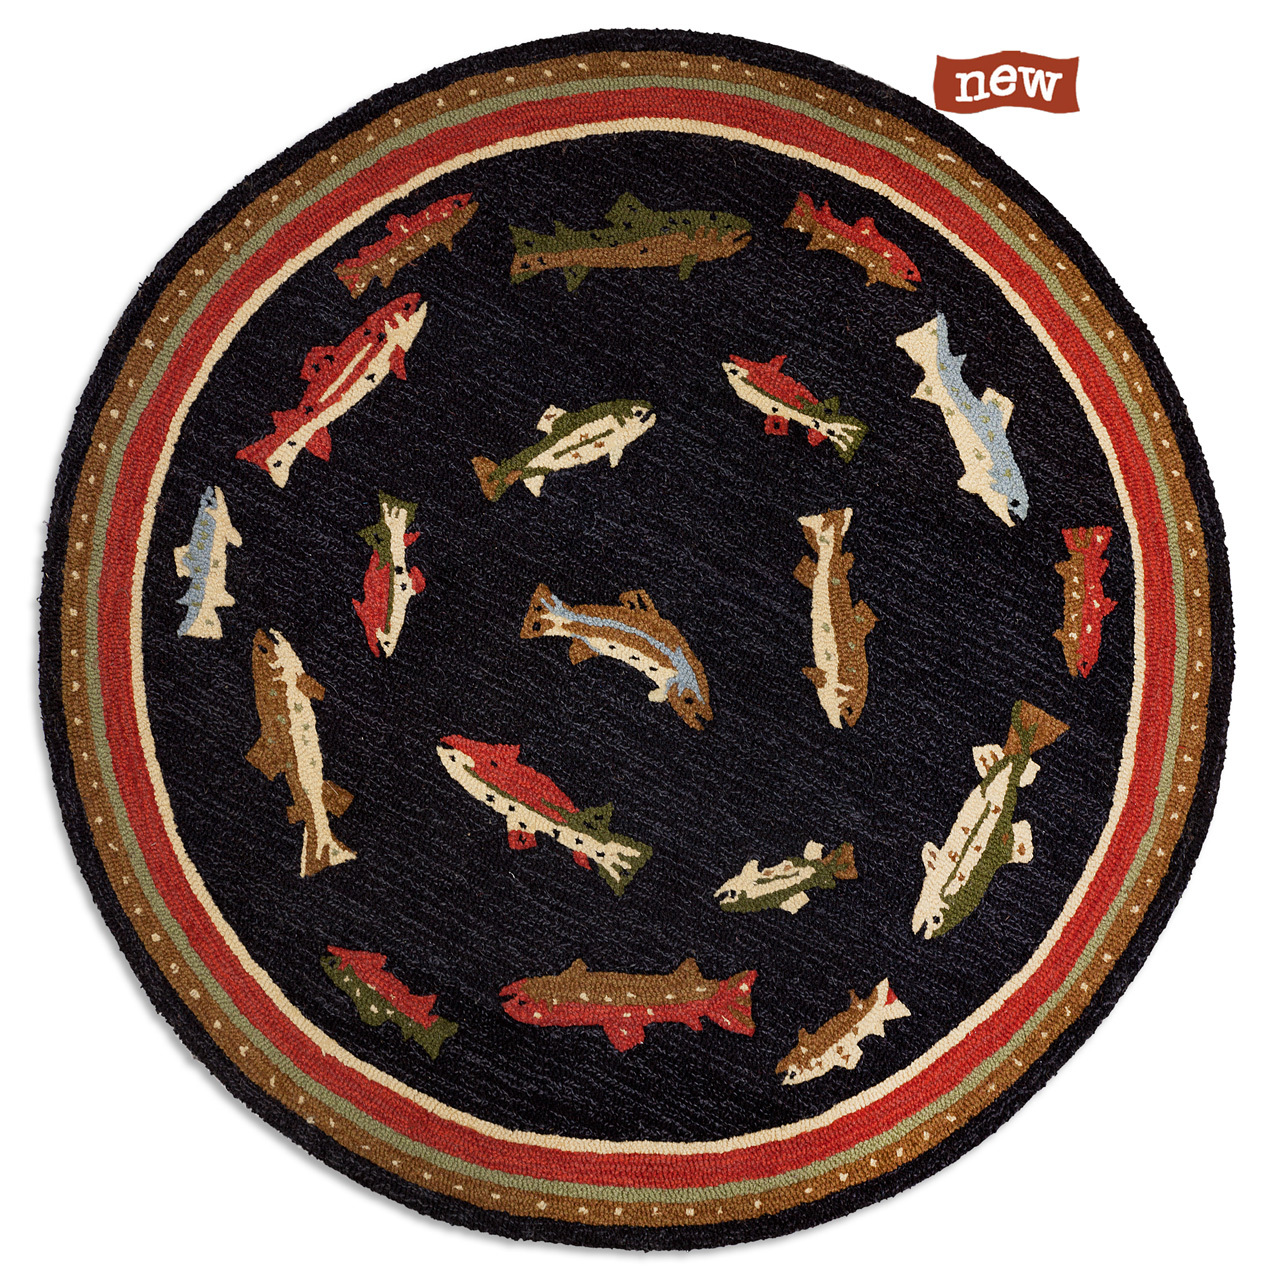 Chandler's New Trout Design: A Classic Rug Motif Is Re